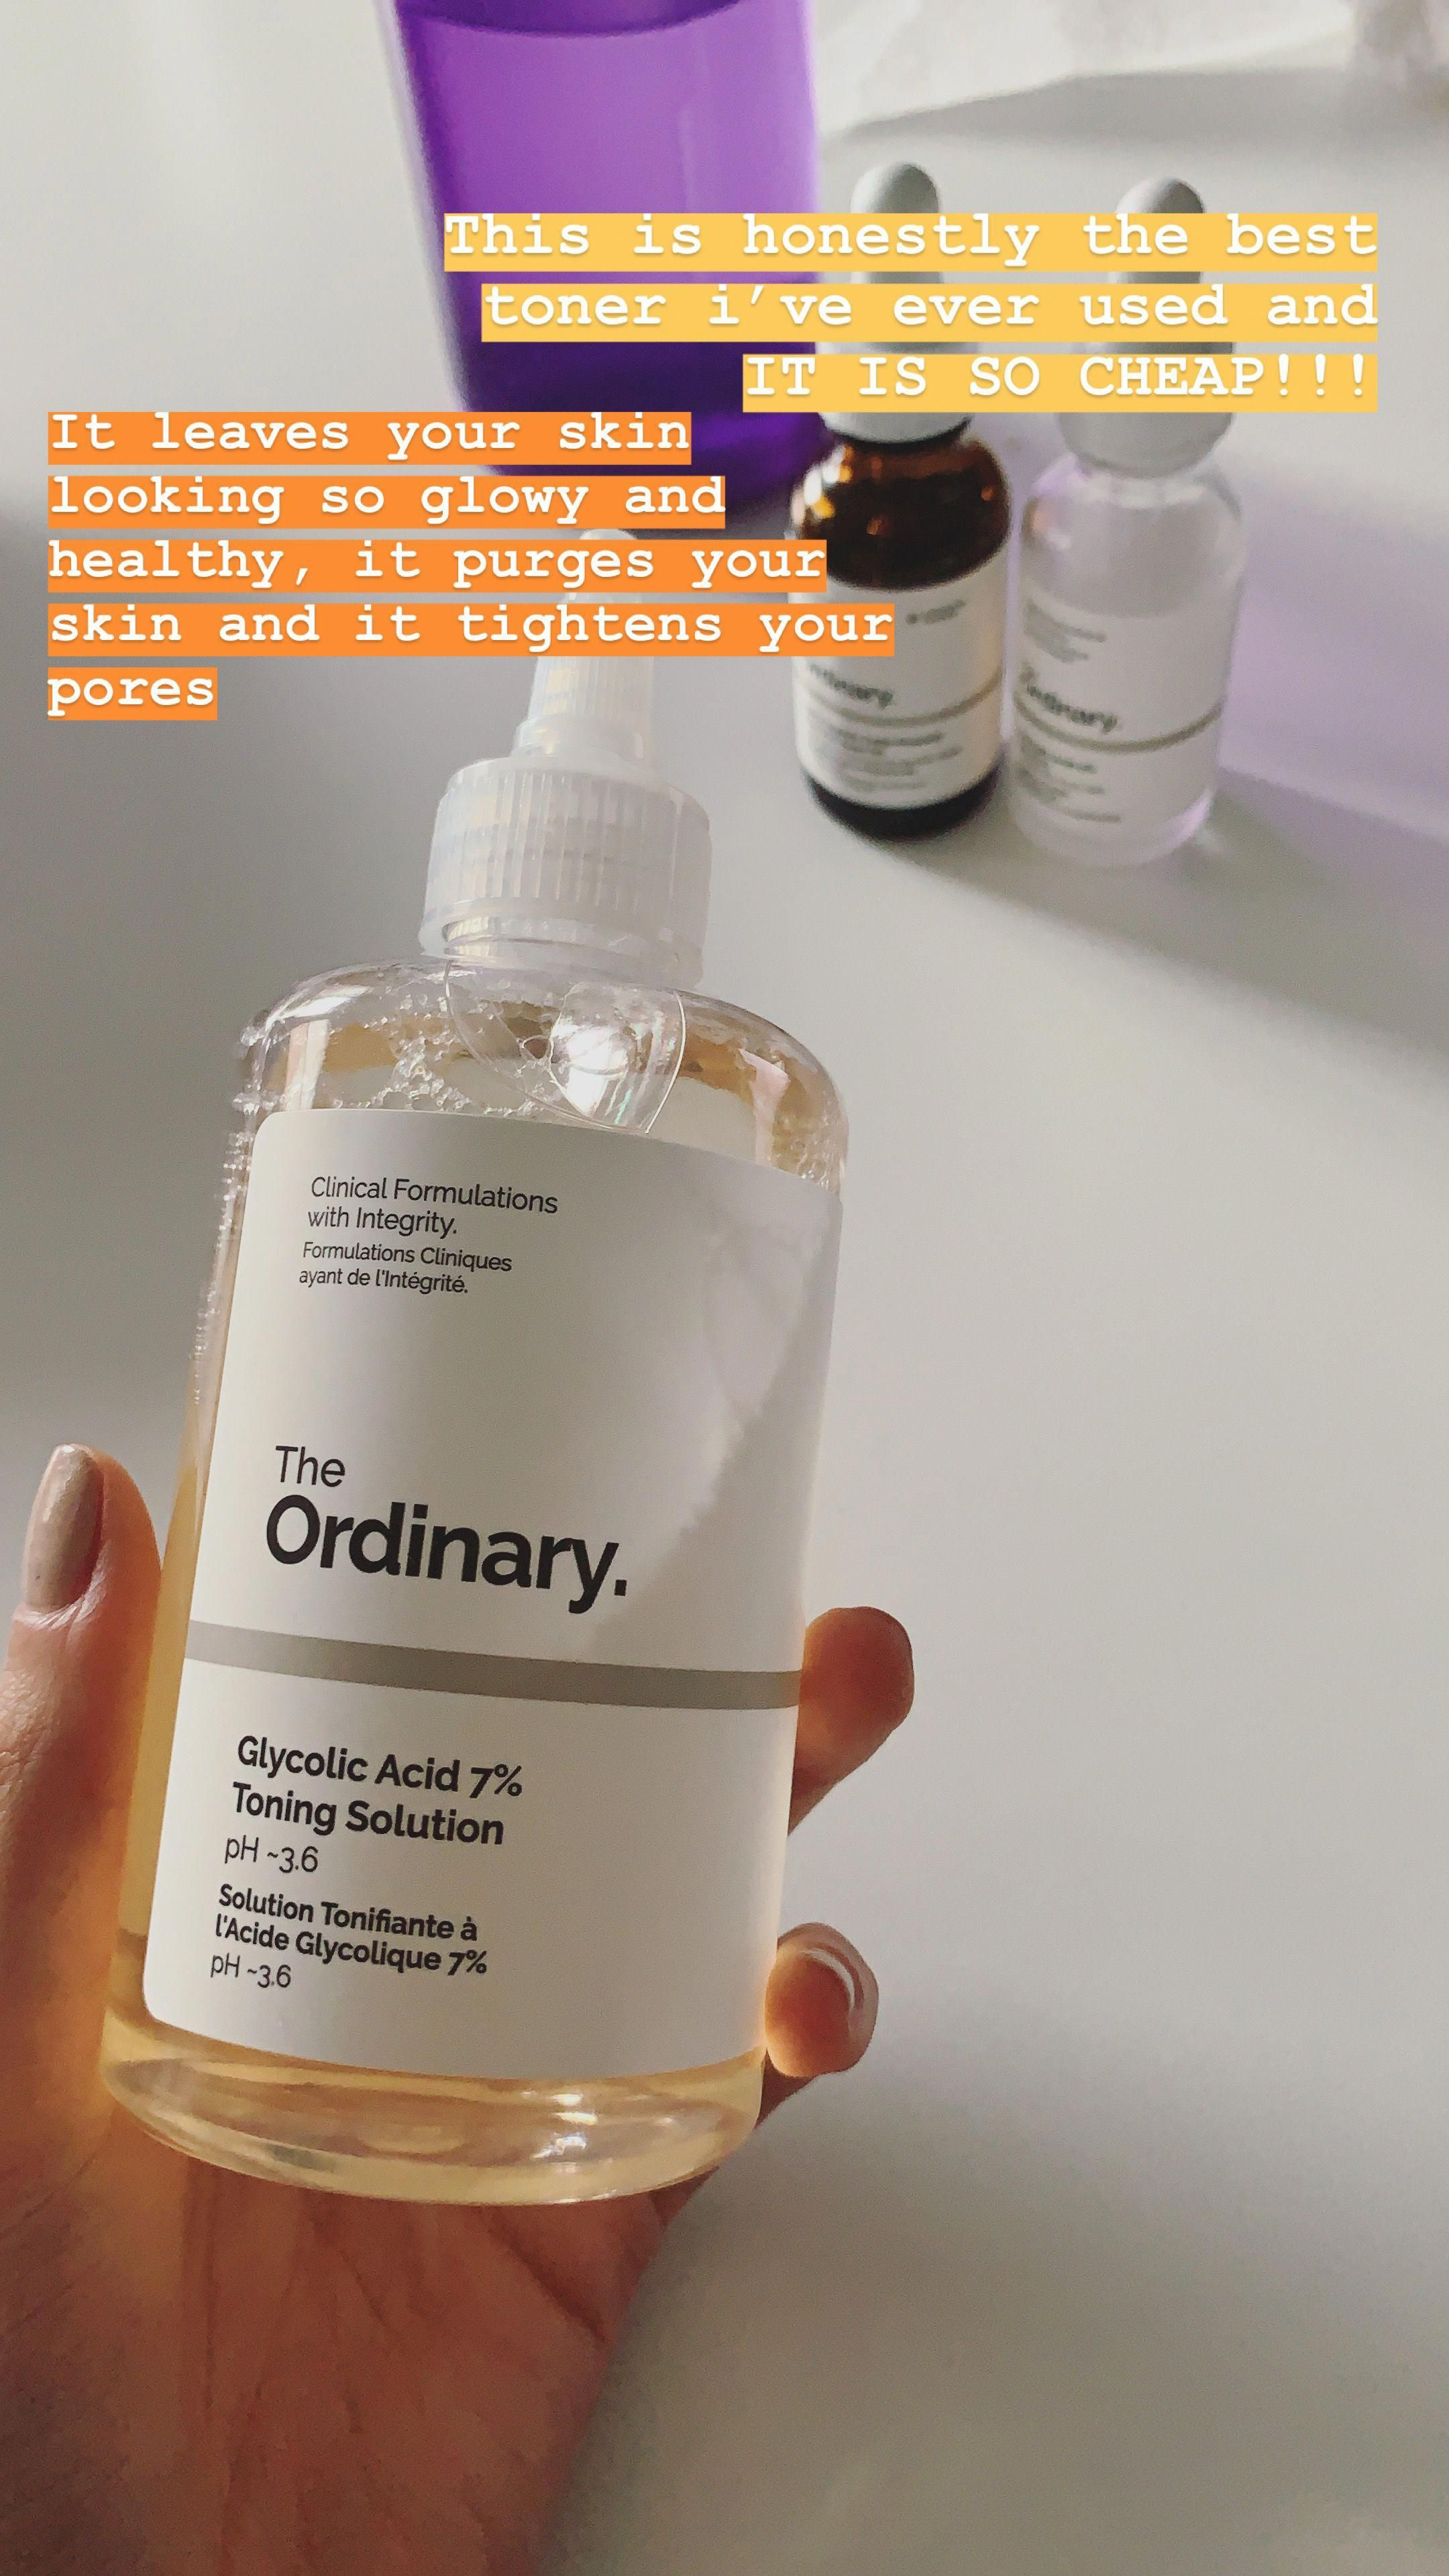 The Ordinary Skincare Routine Bestproducts Skincareroutine Face Skin Care The Ordinary Skincare Healthy Skin Care